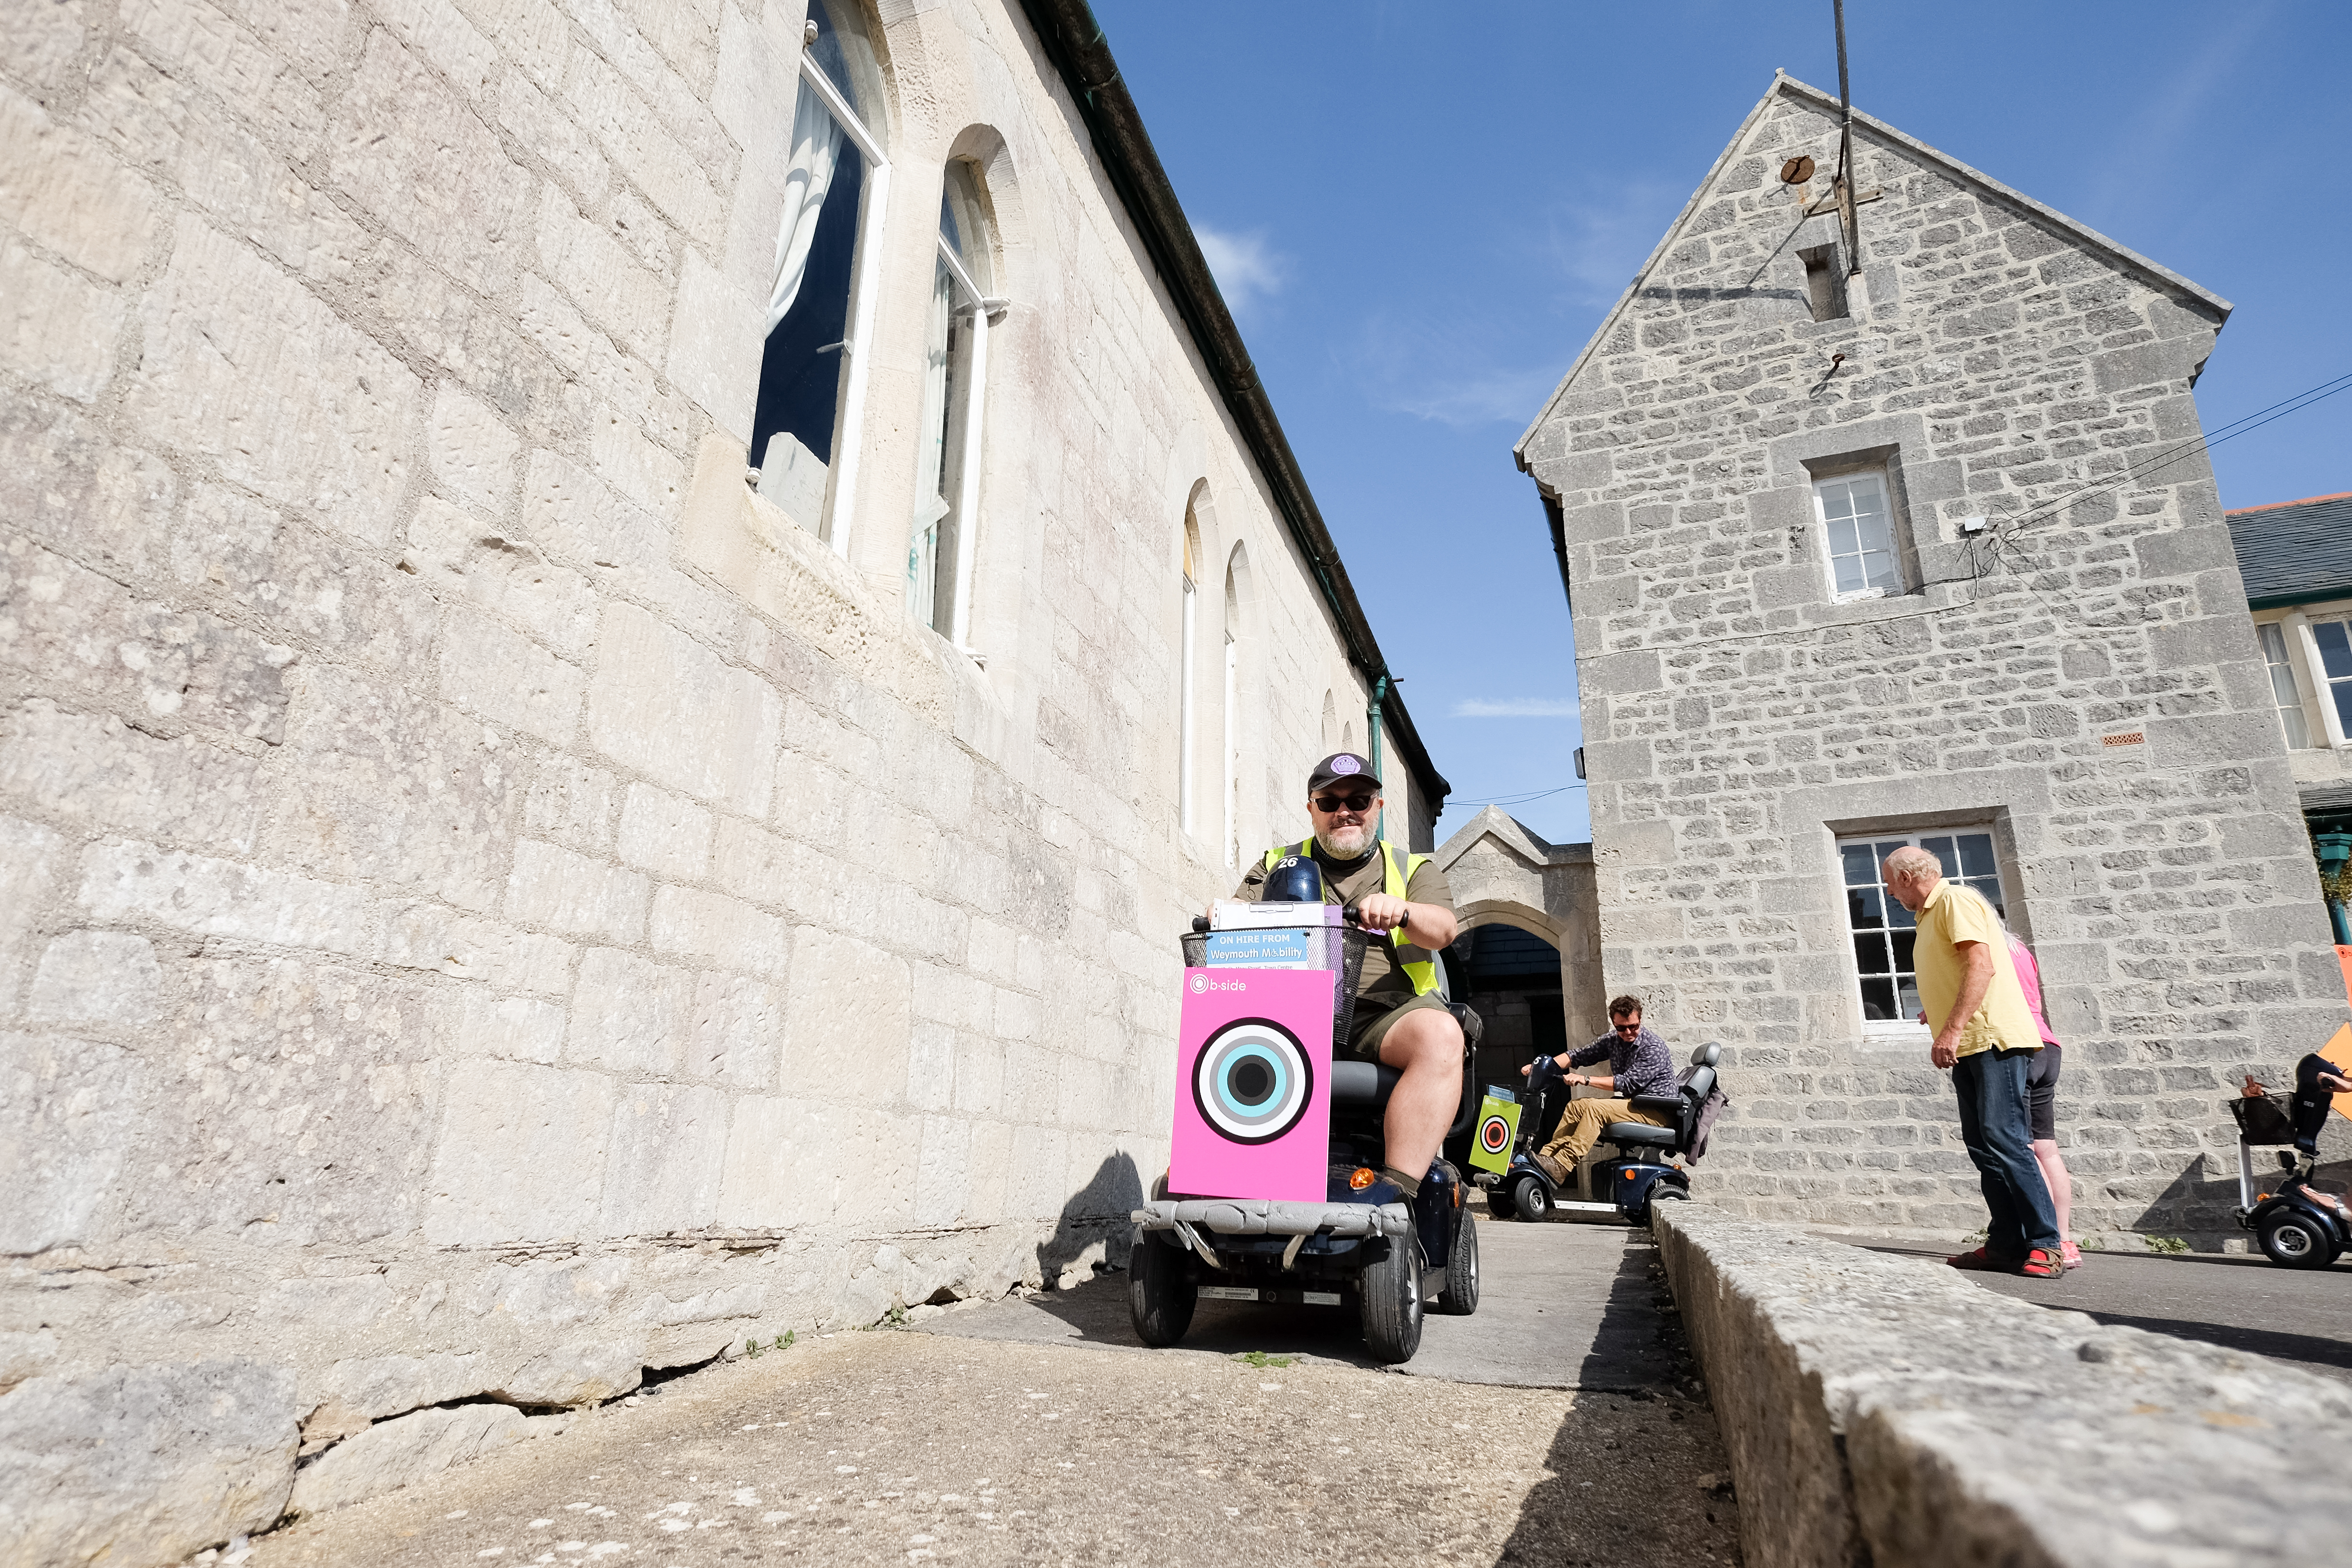 Alistair Gentry dressed as an Imaginary History ranger with a hi-vis jacket and cap, with mobility scooter users beside an old stone building.